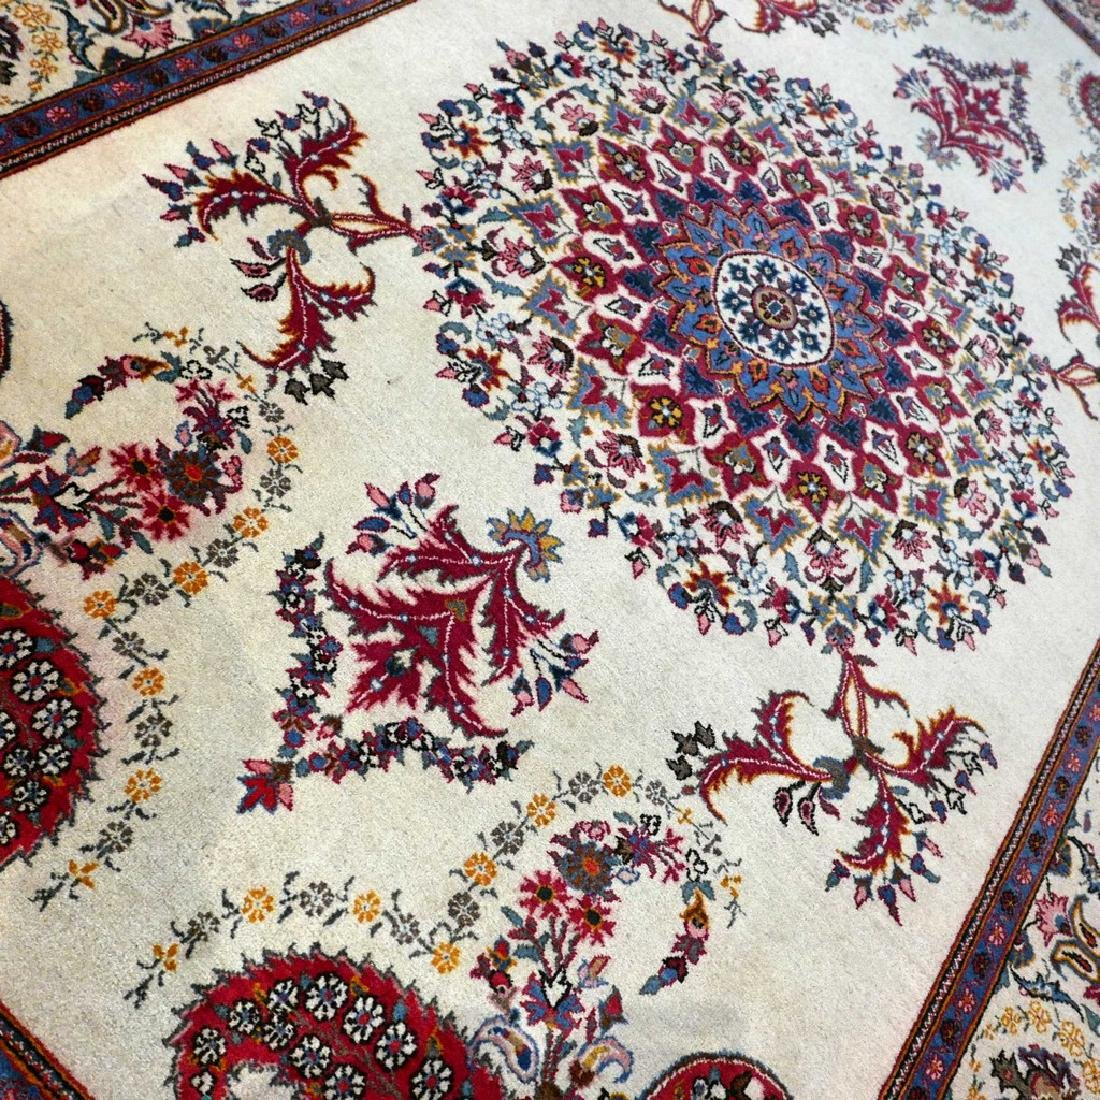 Keshan With Special Design Rug 7x4.4 - 5